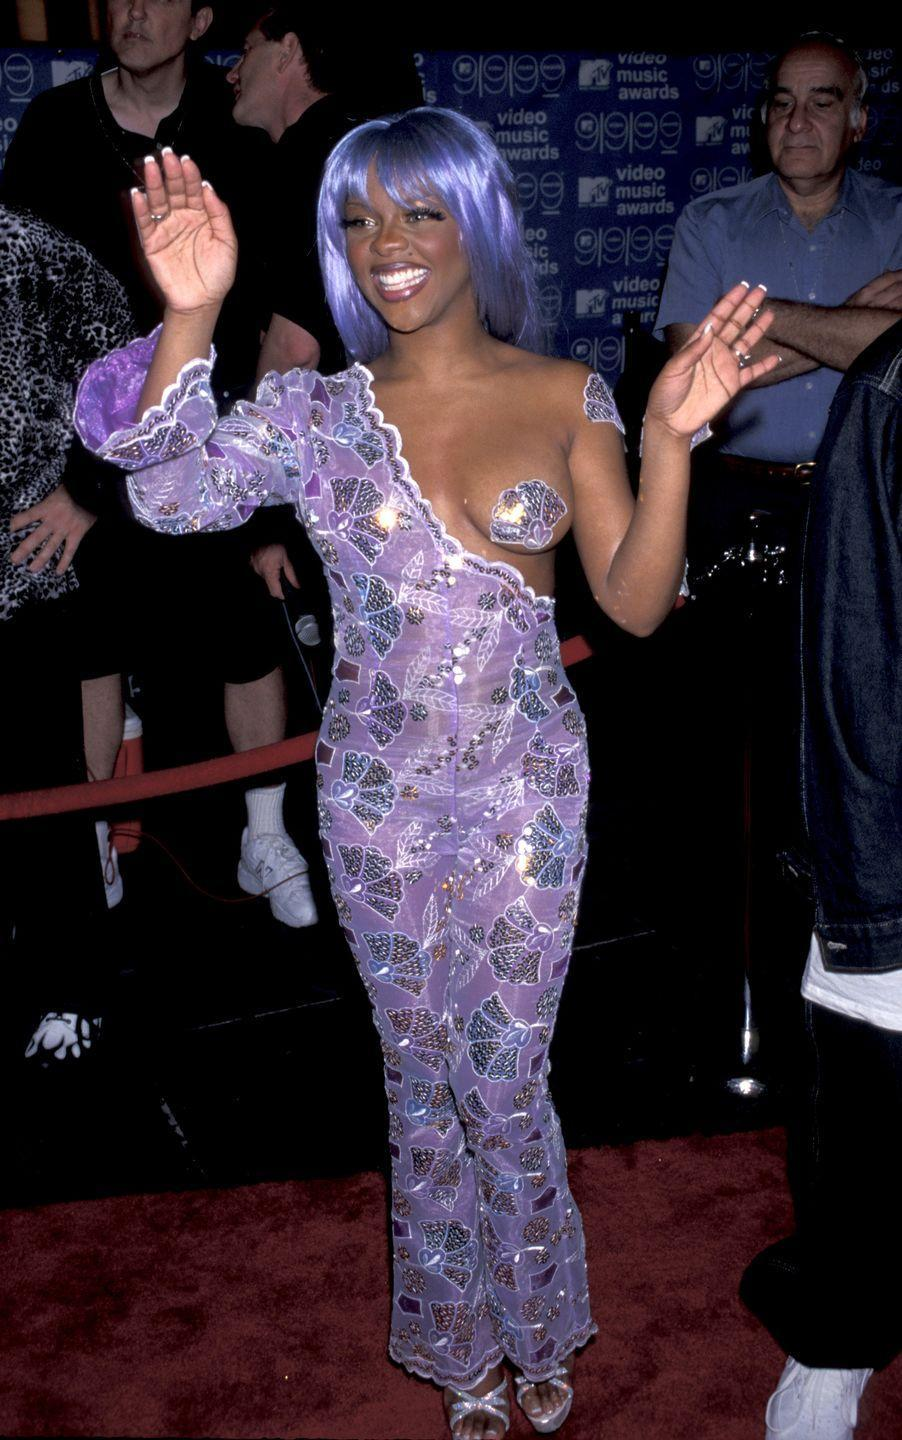 """<p>Speaking of not wearing many clothes, Lil Kim rocked the nipple sticker trick <a href=""""https://www.cosmopolitan.com/uk/fashion/celebrity/news/a38195/miley-cyrus-jimmy-kimmel-topless-nipple-stickers/"""" rel=""""nofollow noopener"""" target=""""_blank"""" data-ylk=""""slk:Miley Cyrus is trying to make happen now"""" class=""""link rapid-noclick-resp"""">Miley Cyrus is trying to make happen now</a>, all the way back in 1999.</p>"""